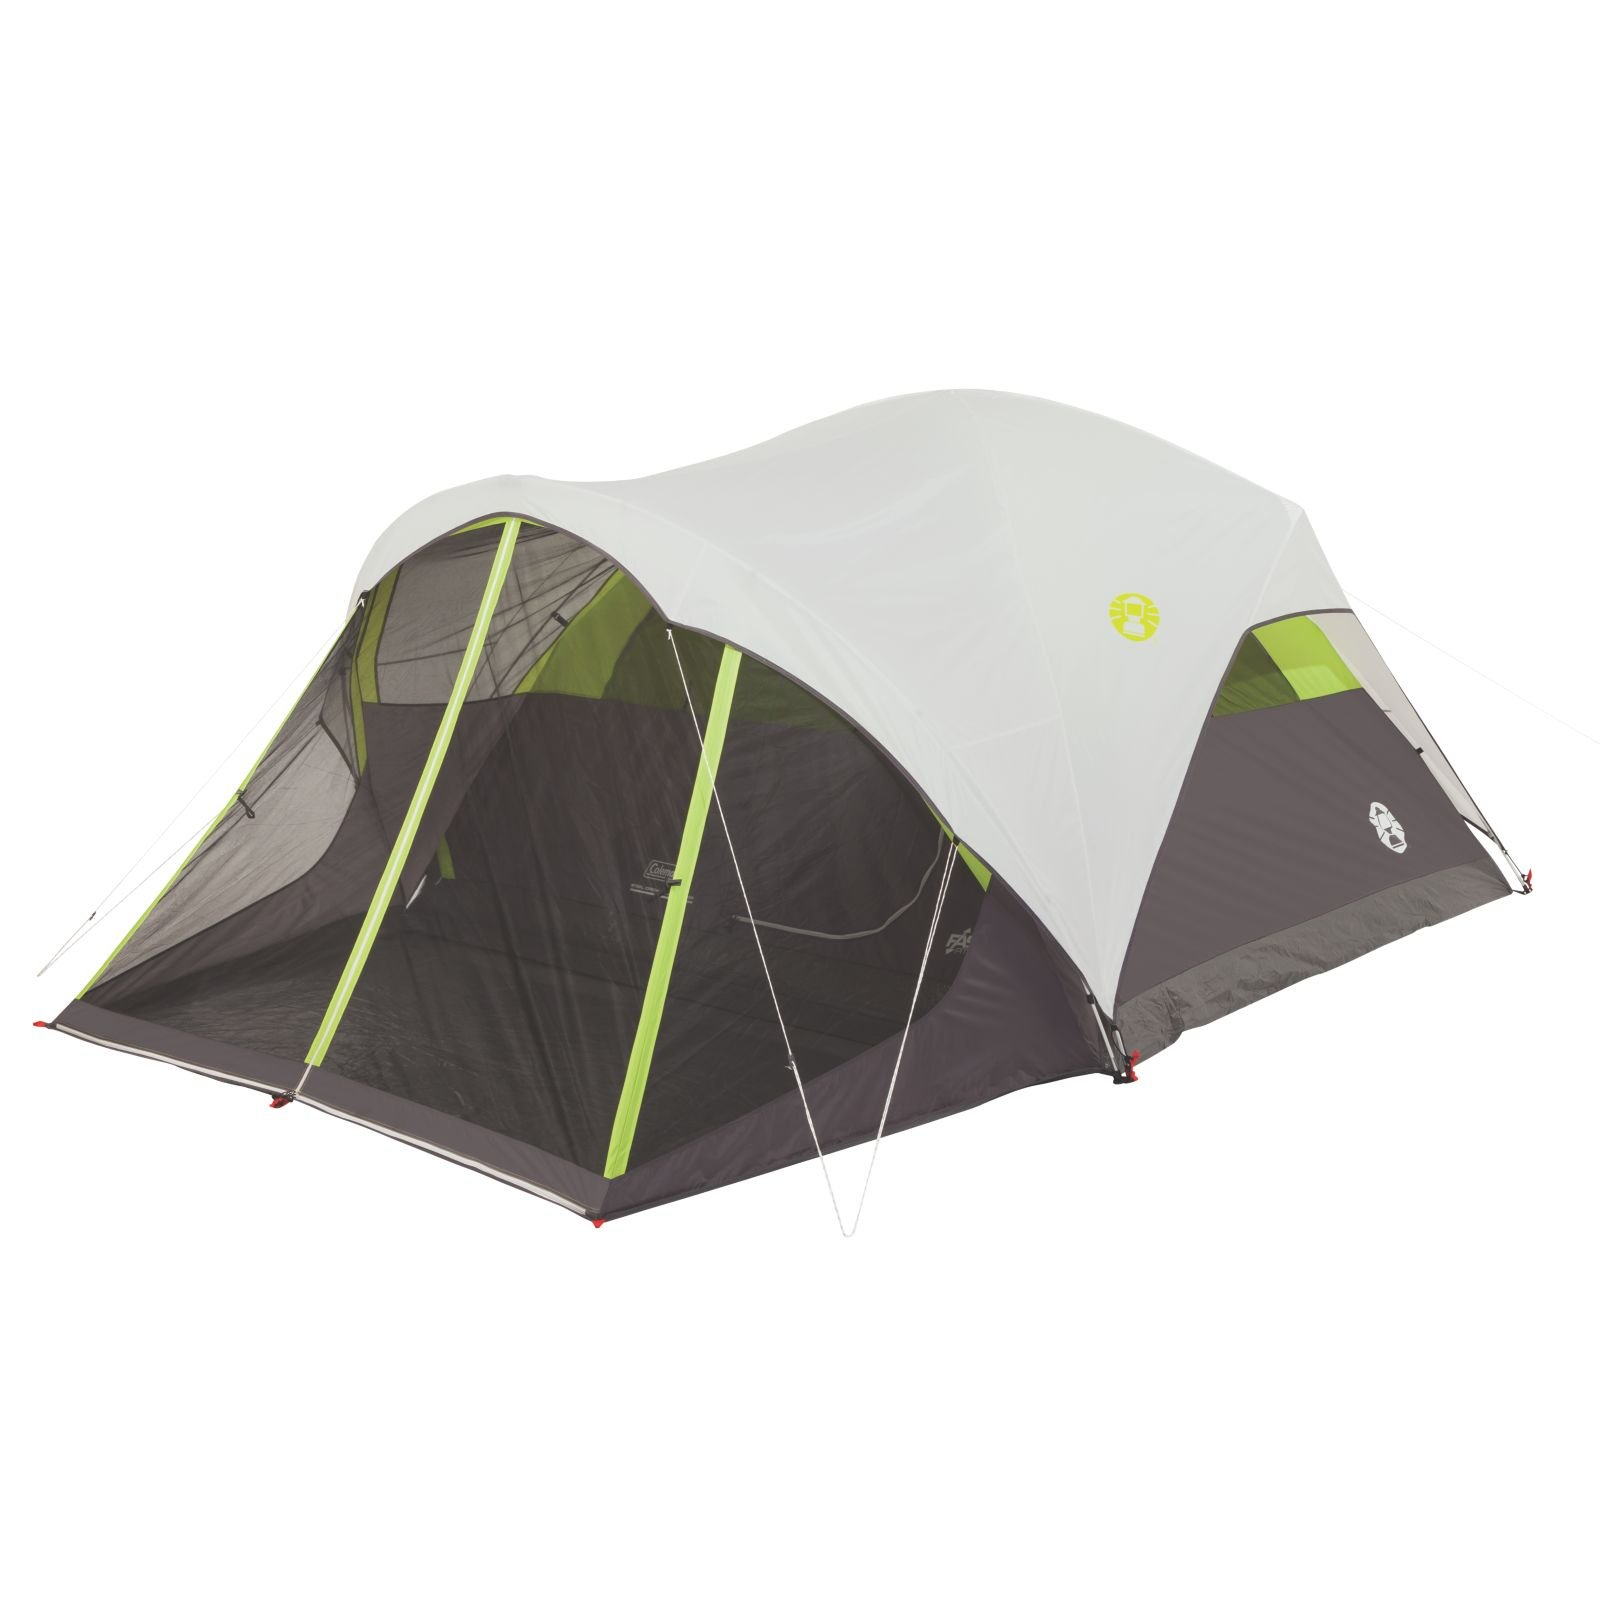 Coleman Montana 8-Person Tent, Green by Coleman (Image #1)